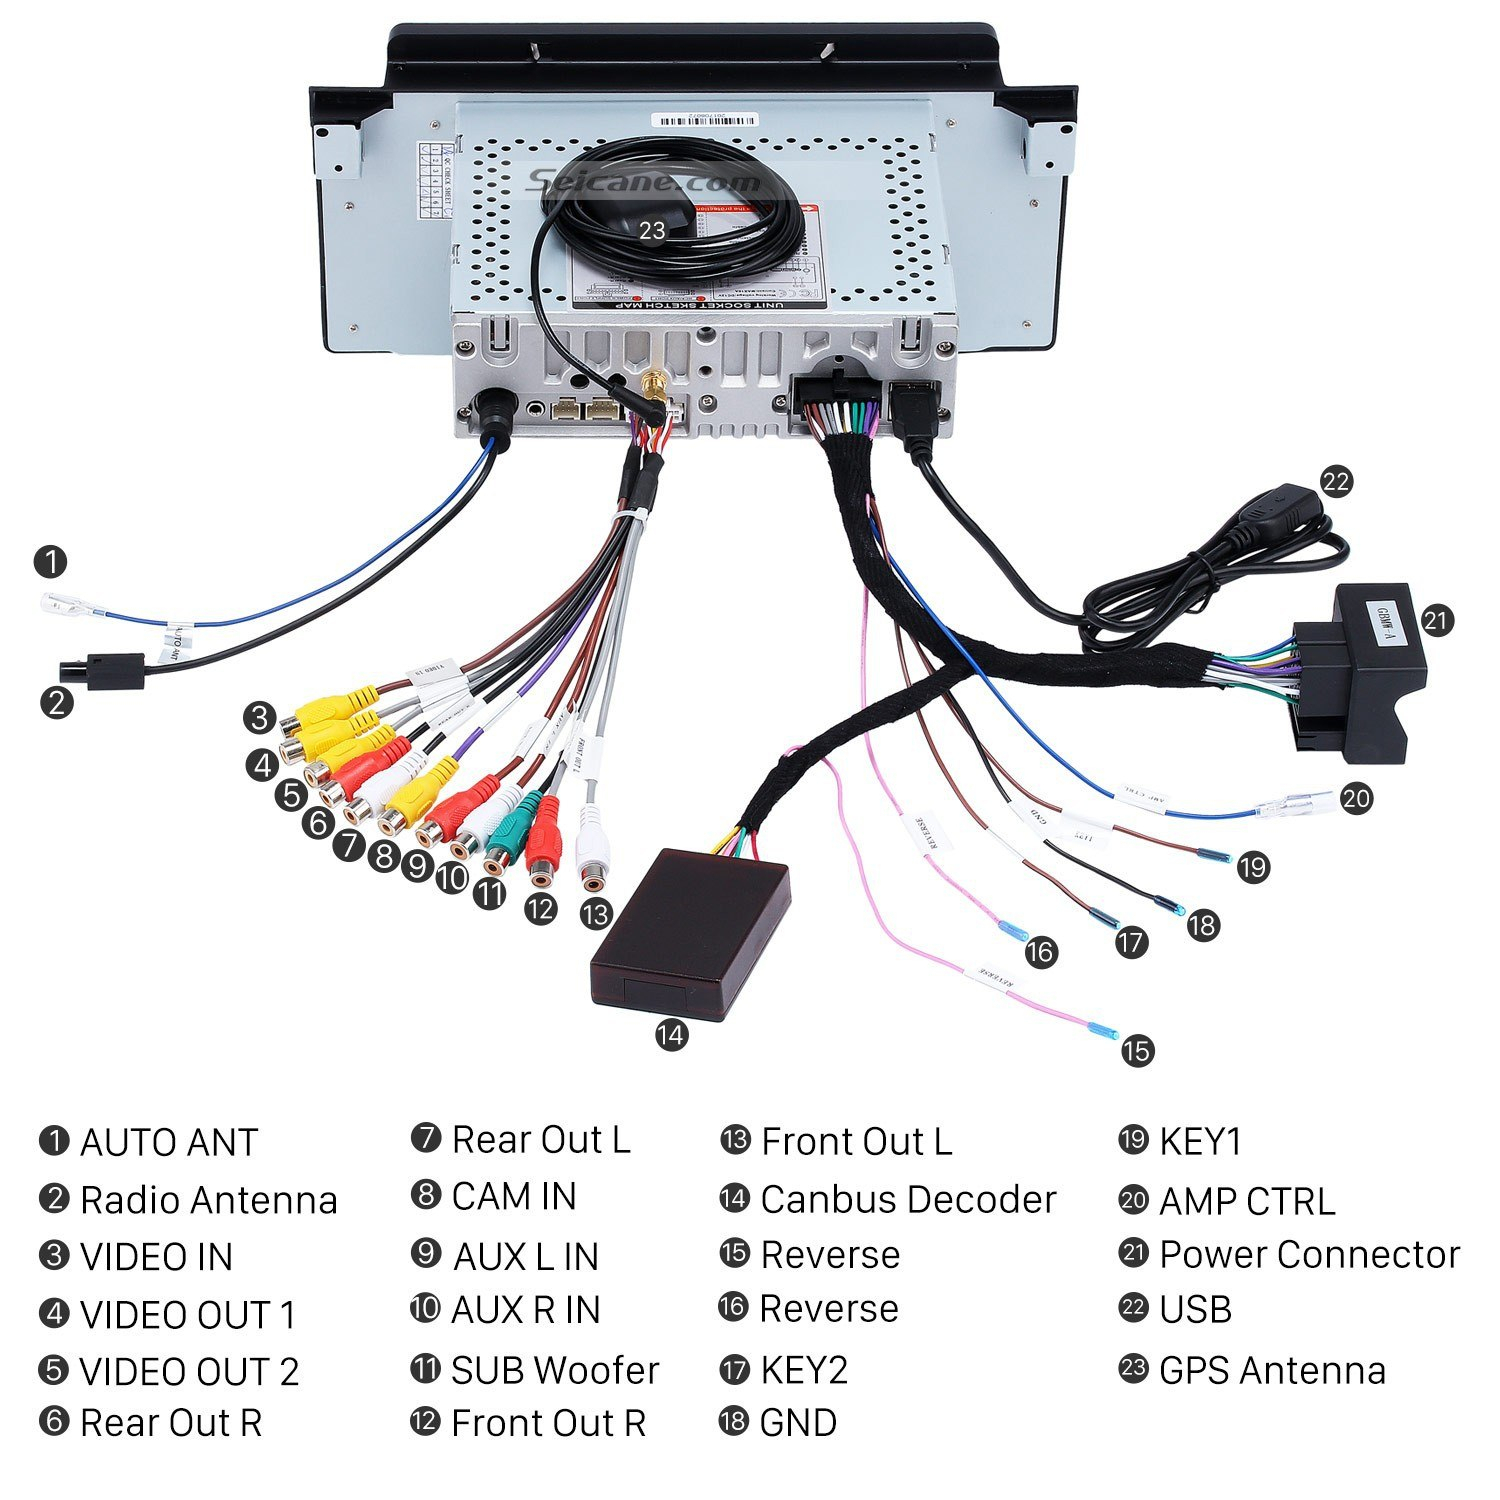 niles ir repeater wiring diagram Collection-home network wiring diagram Collection Diagram for Home Network – Luxury Light Wiring Diagram Best DOWNLOAD Wiring Diagram 3-l